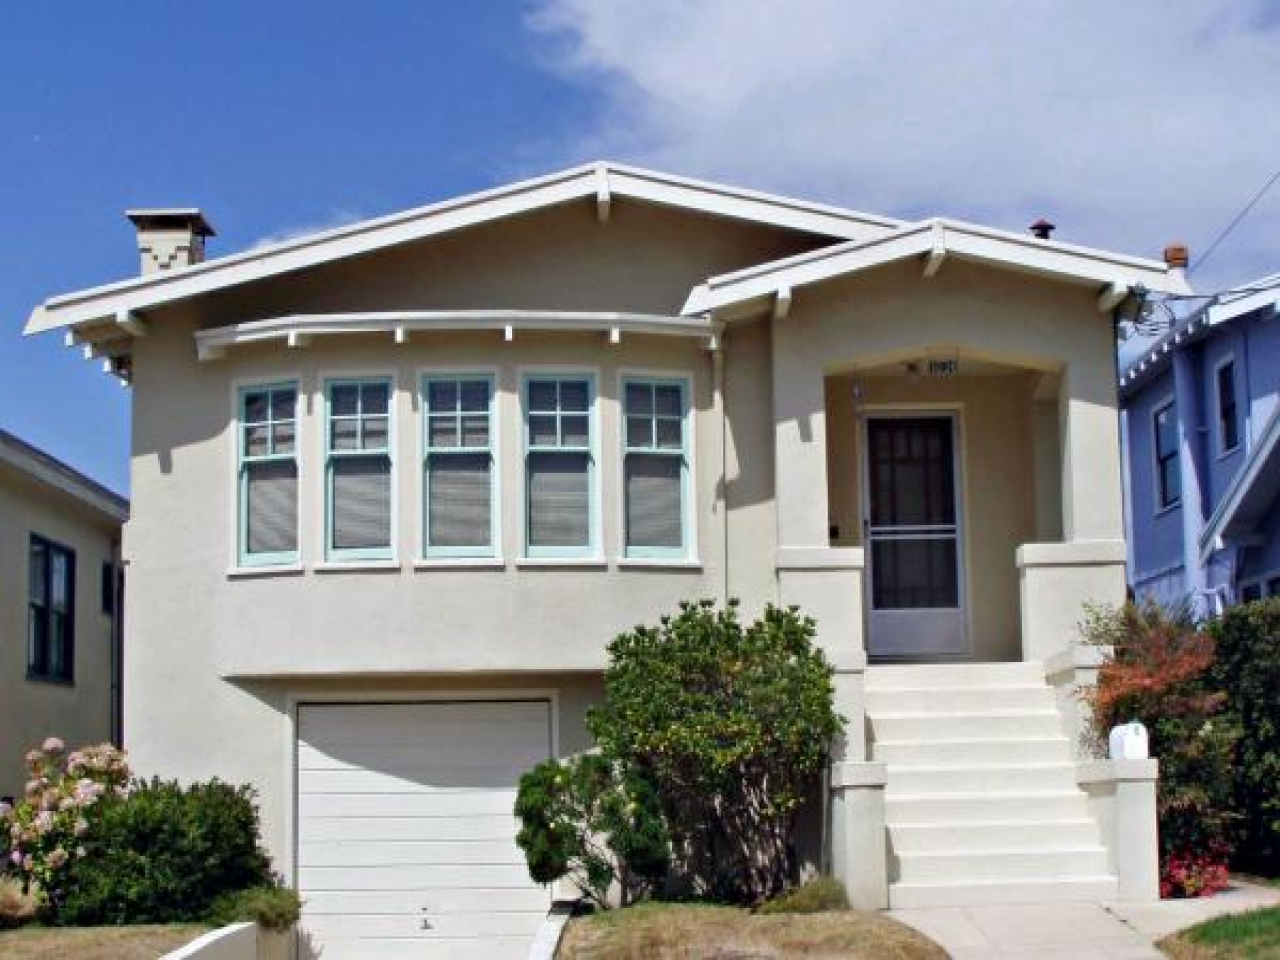 California bungalow 1910 1925 kathie berg 1925 house for 1925 house styles